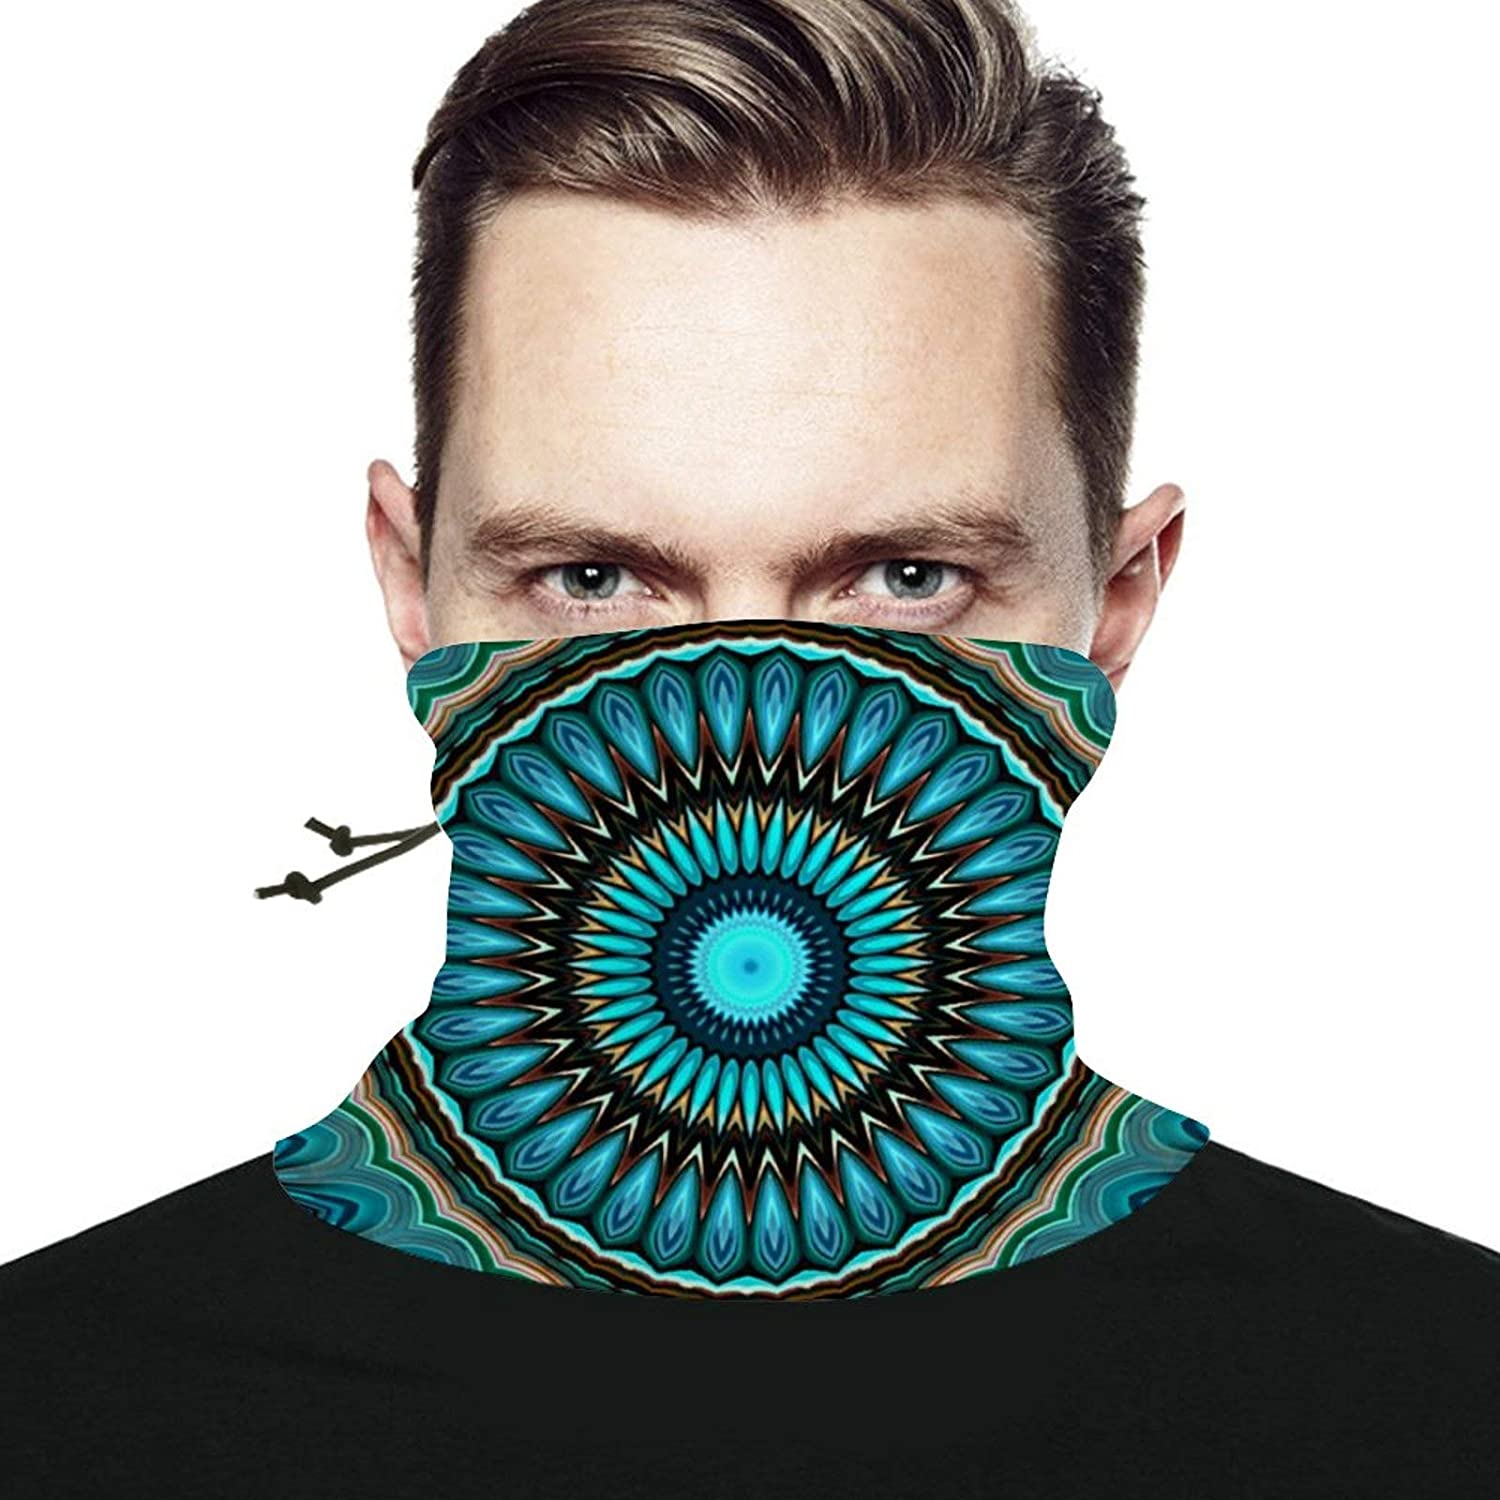 Turquoise Teal Green Circle Seamless Scarf Headwear Neck Gaiter Bandana Neck Warmer Multifunctional Face Cover Windproof UV Protection For Men Women